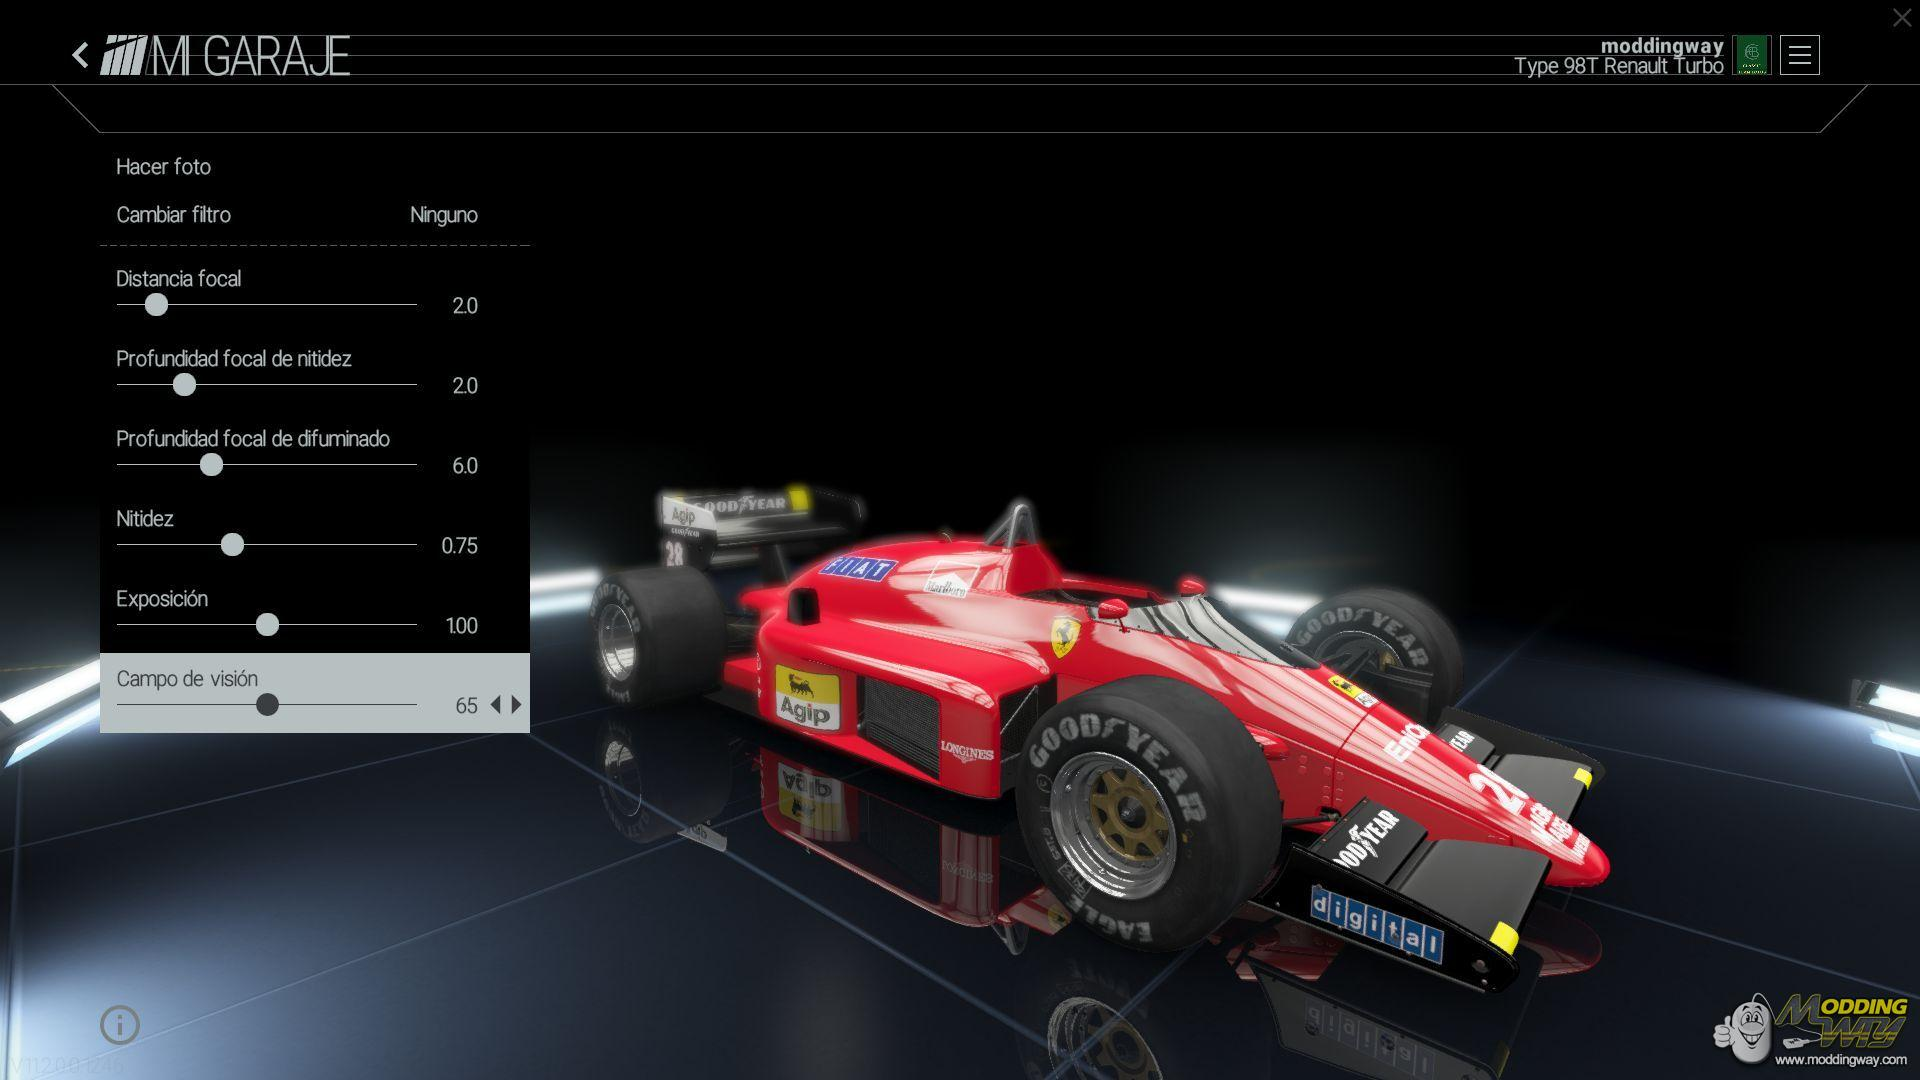 Project Cars F1 Livery Updates - Project Cars Video Game at